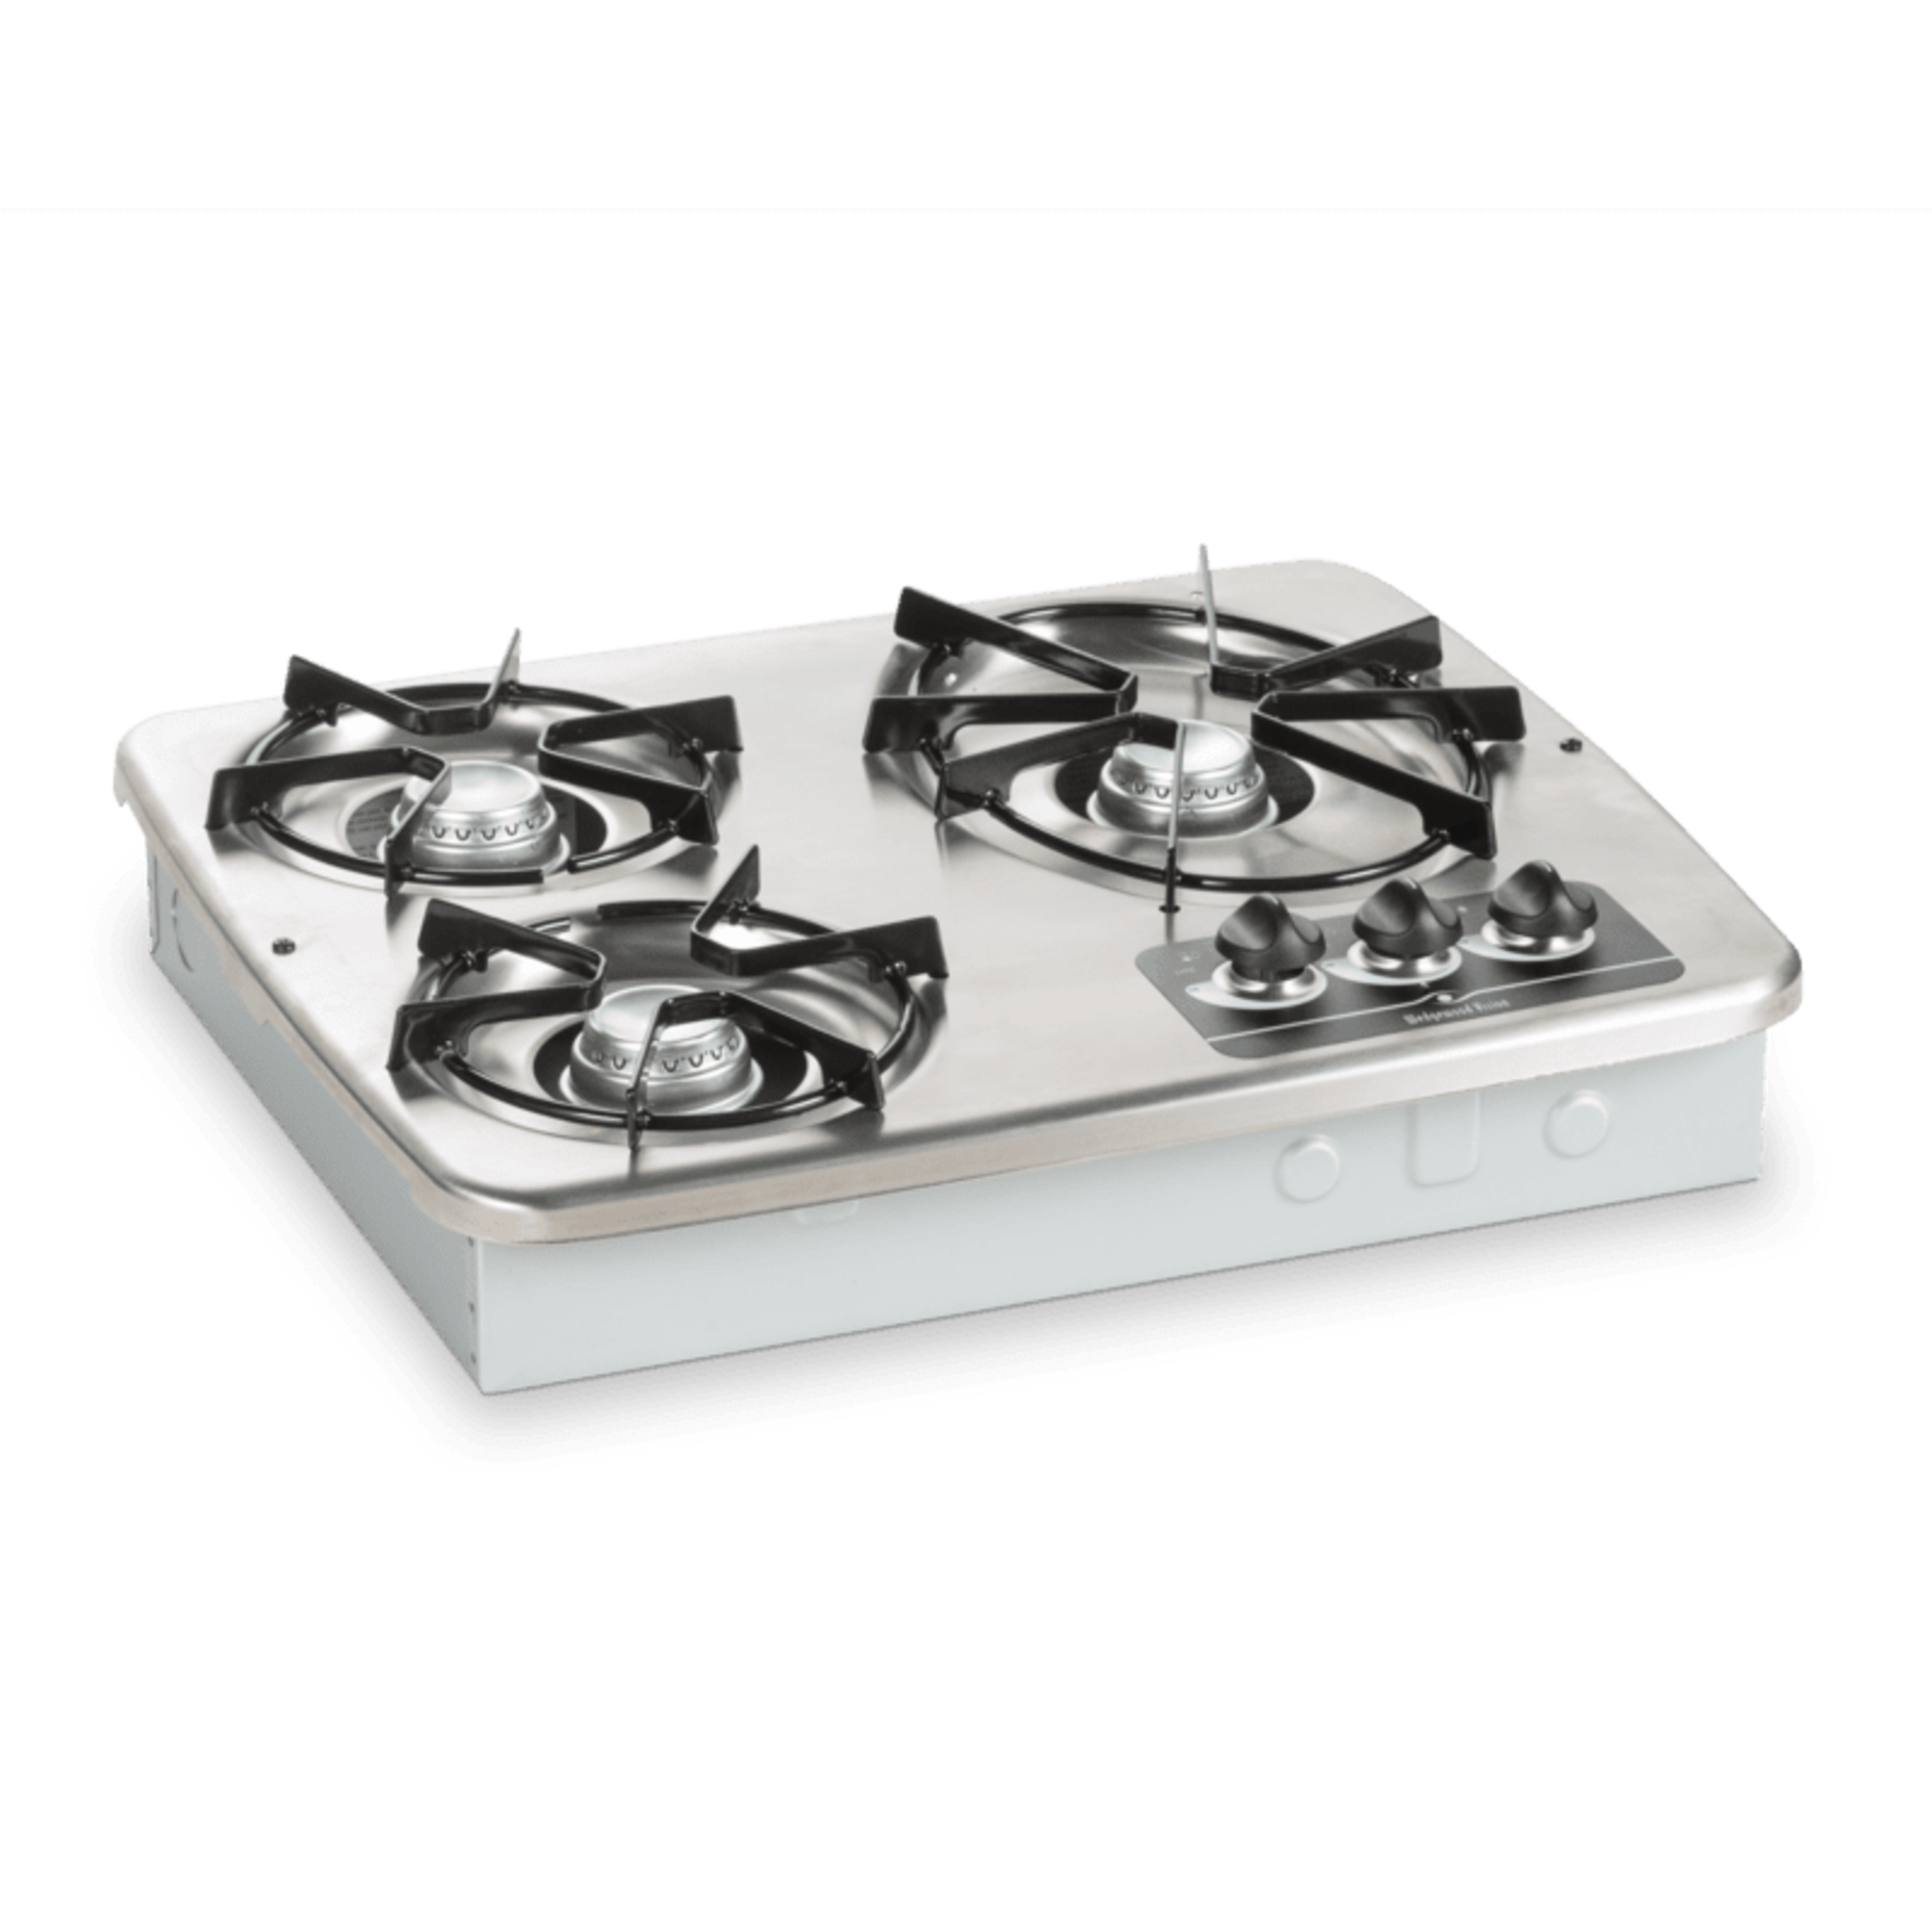 Dometic Wedgewood Vision Cooktop